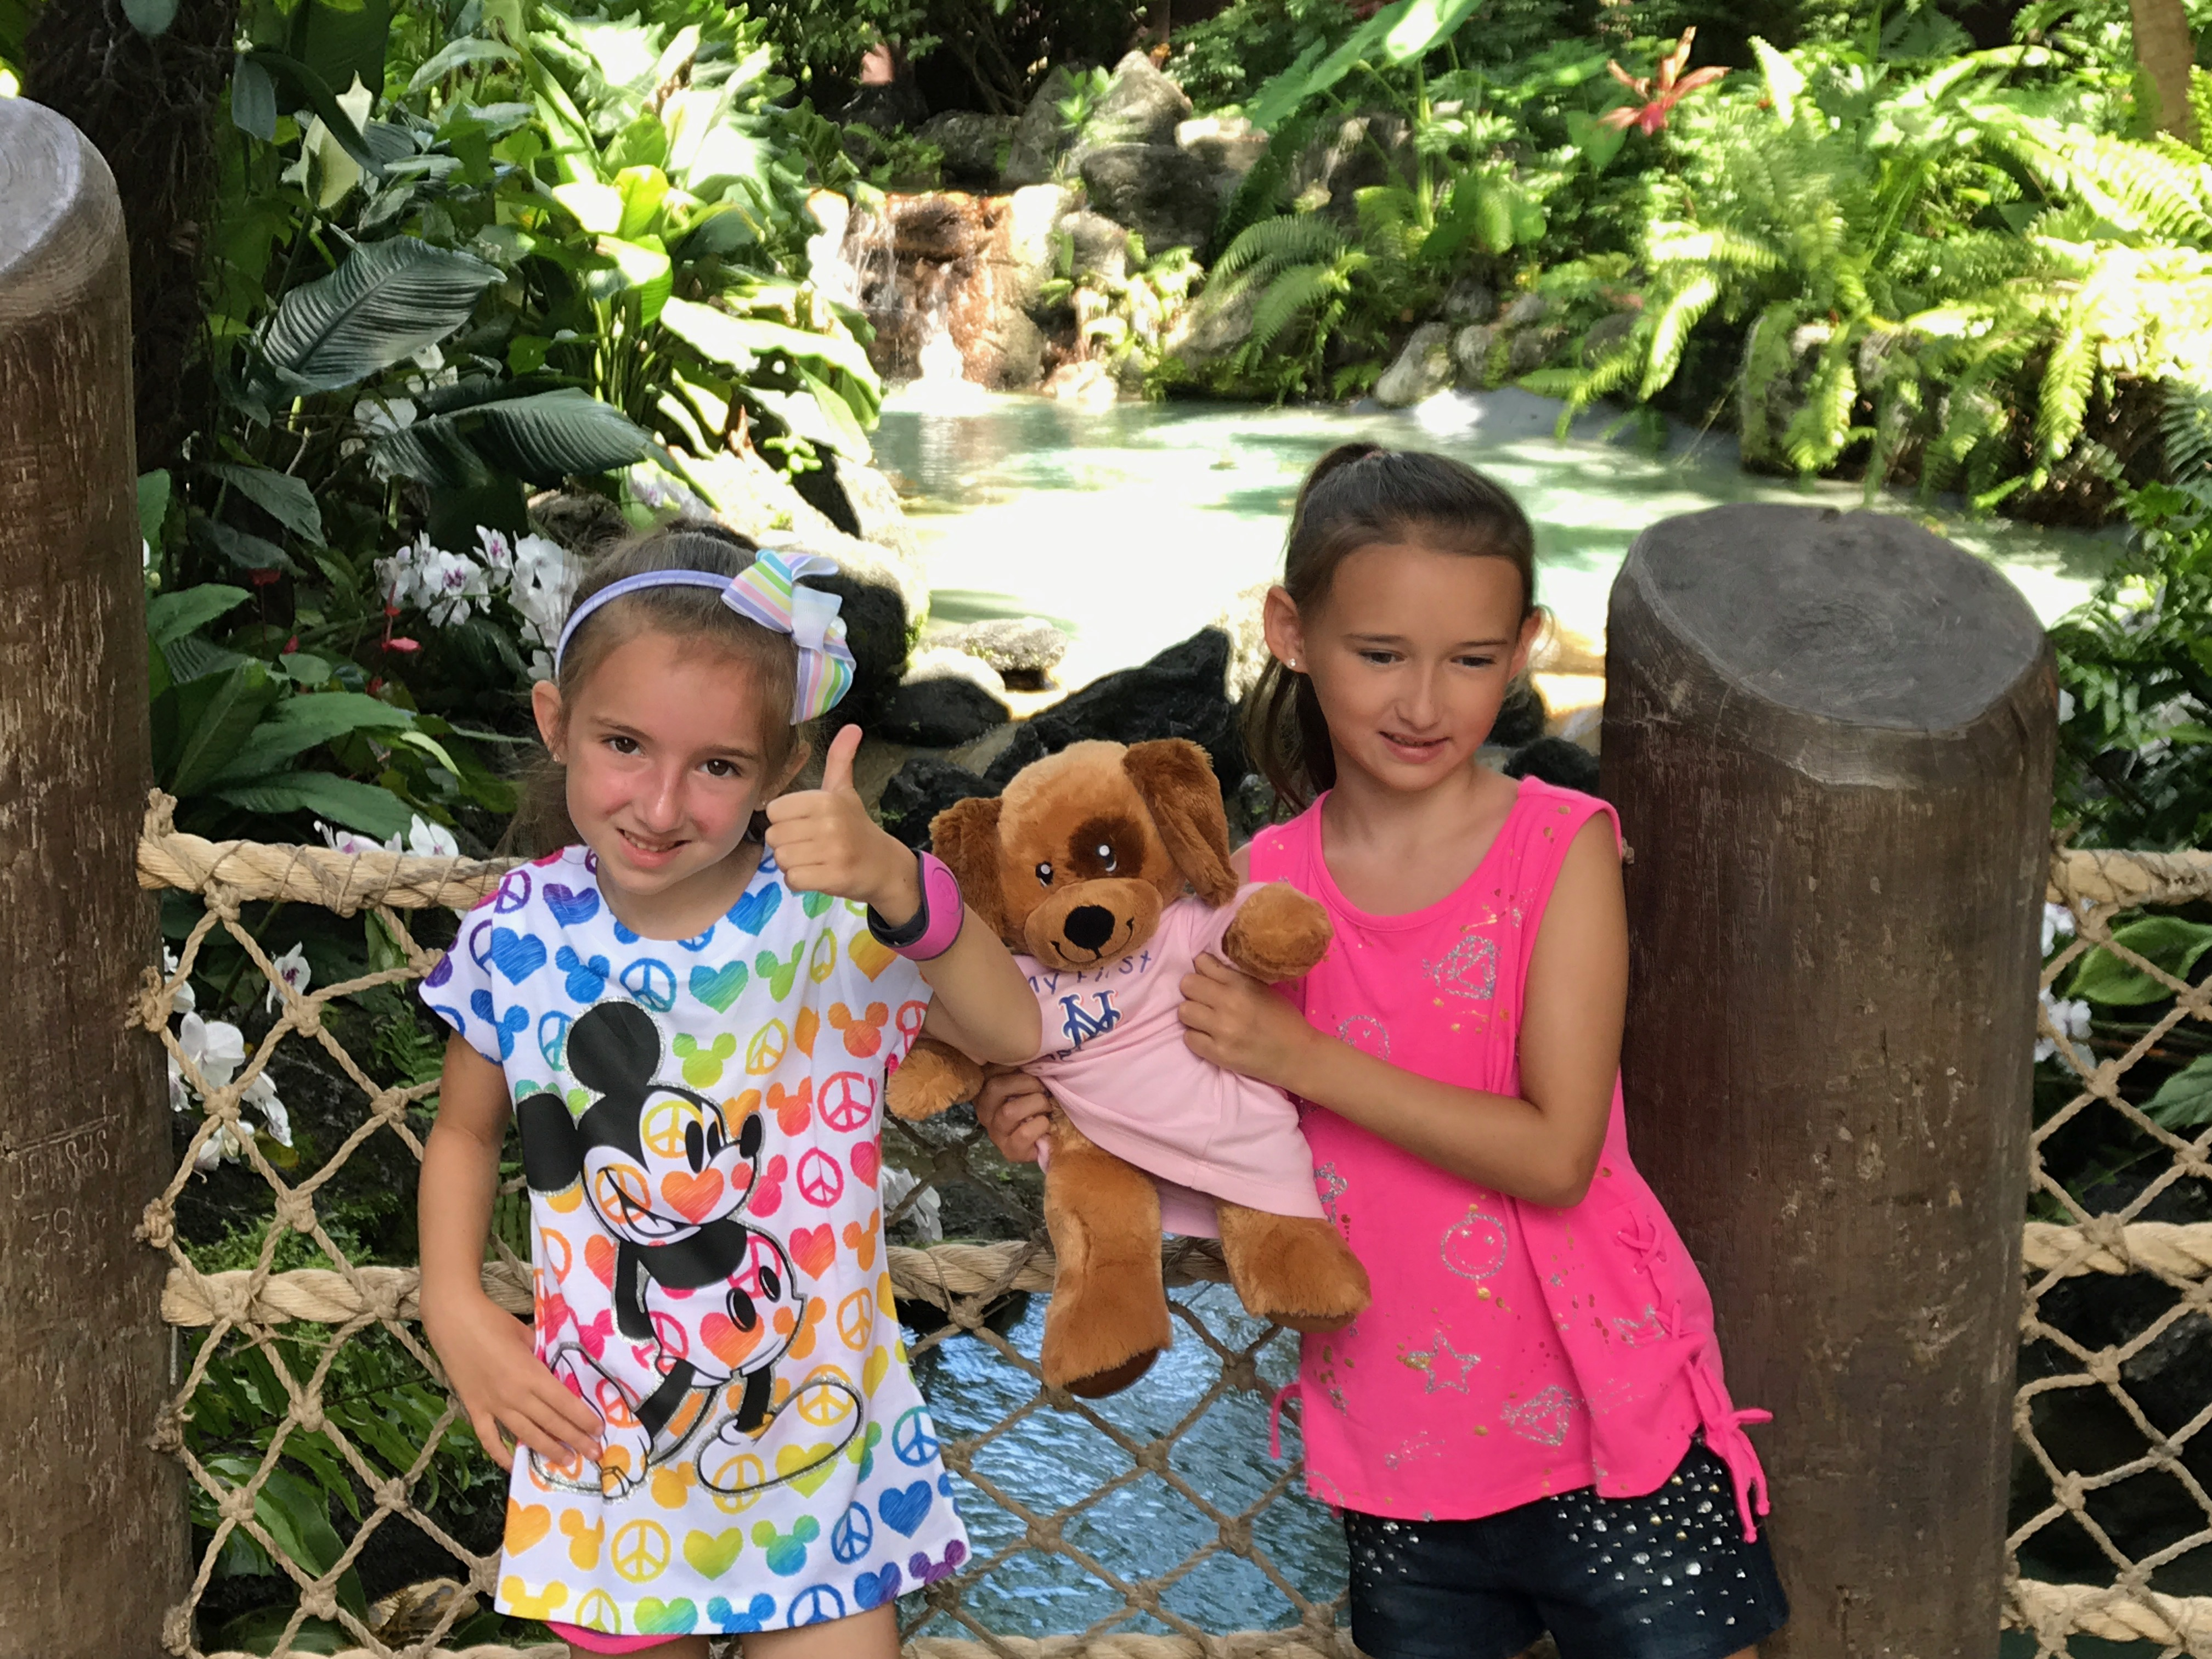 Leaving Walt Disney World's Polynesian Resort